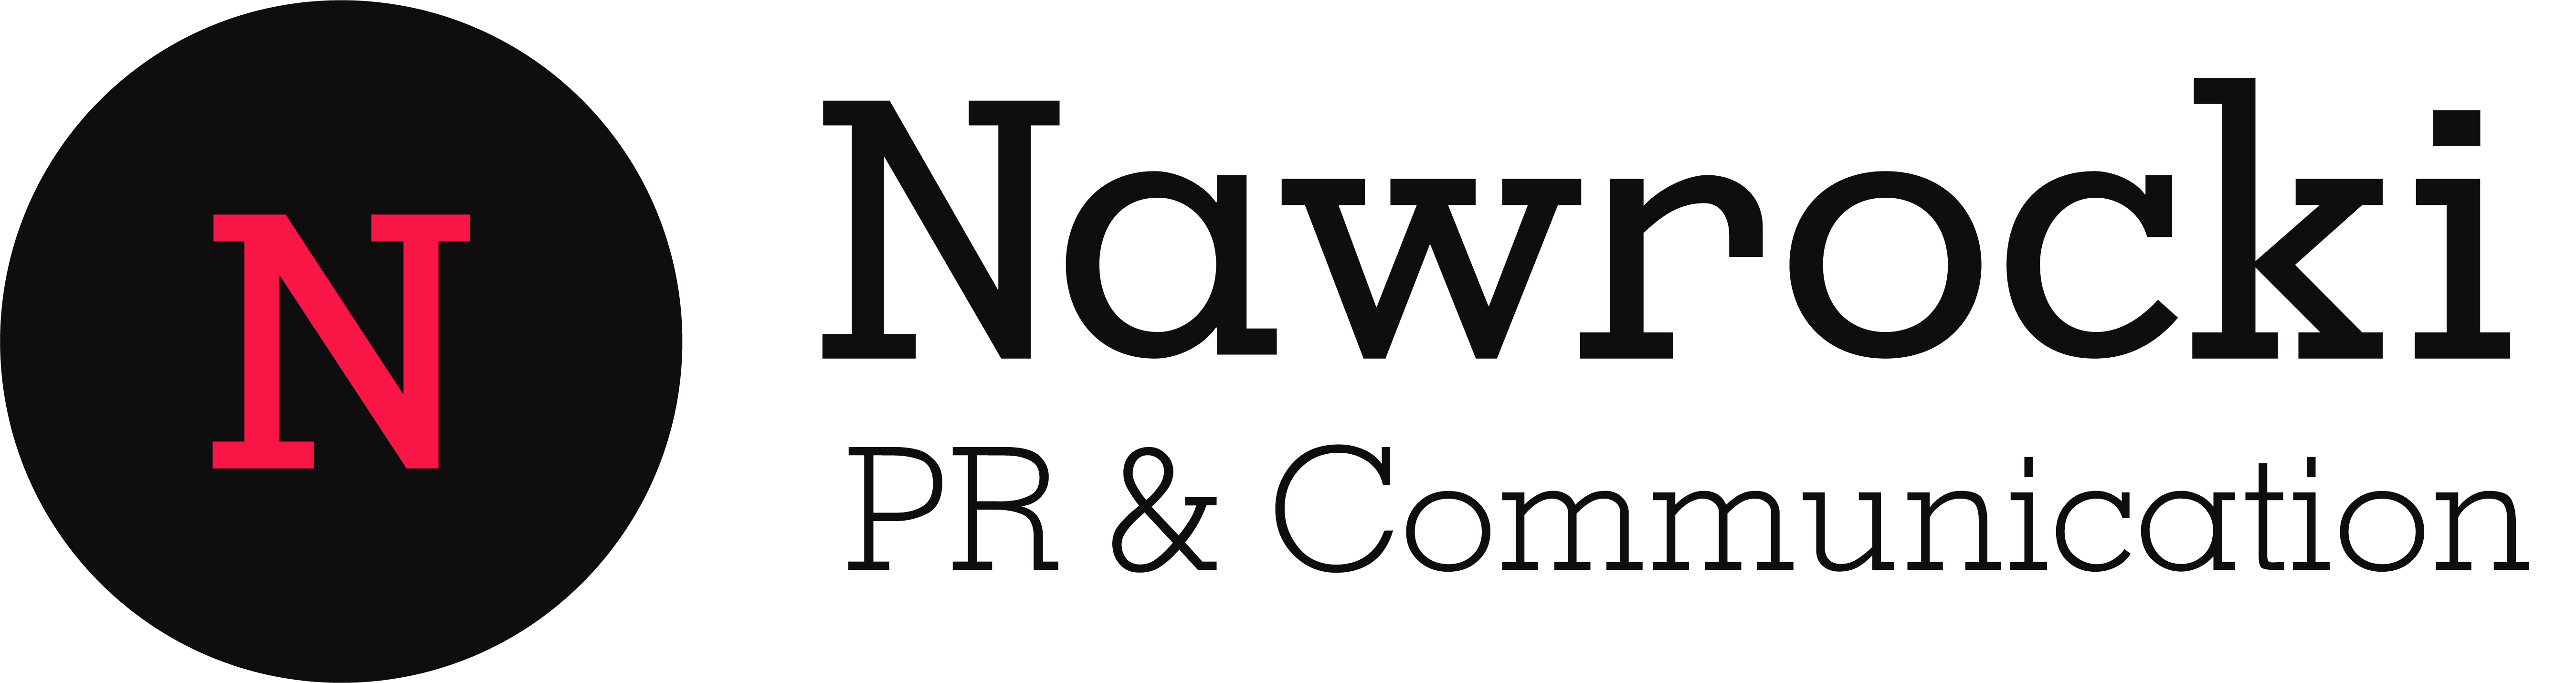 Nawrocki PR & Communication GmbH & Co. KG